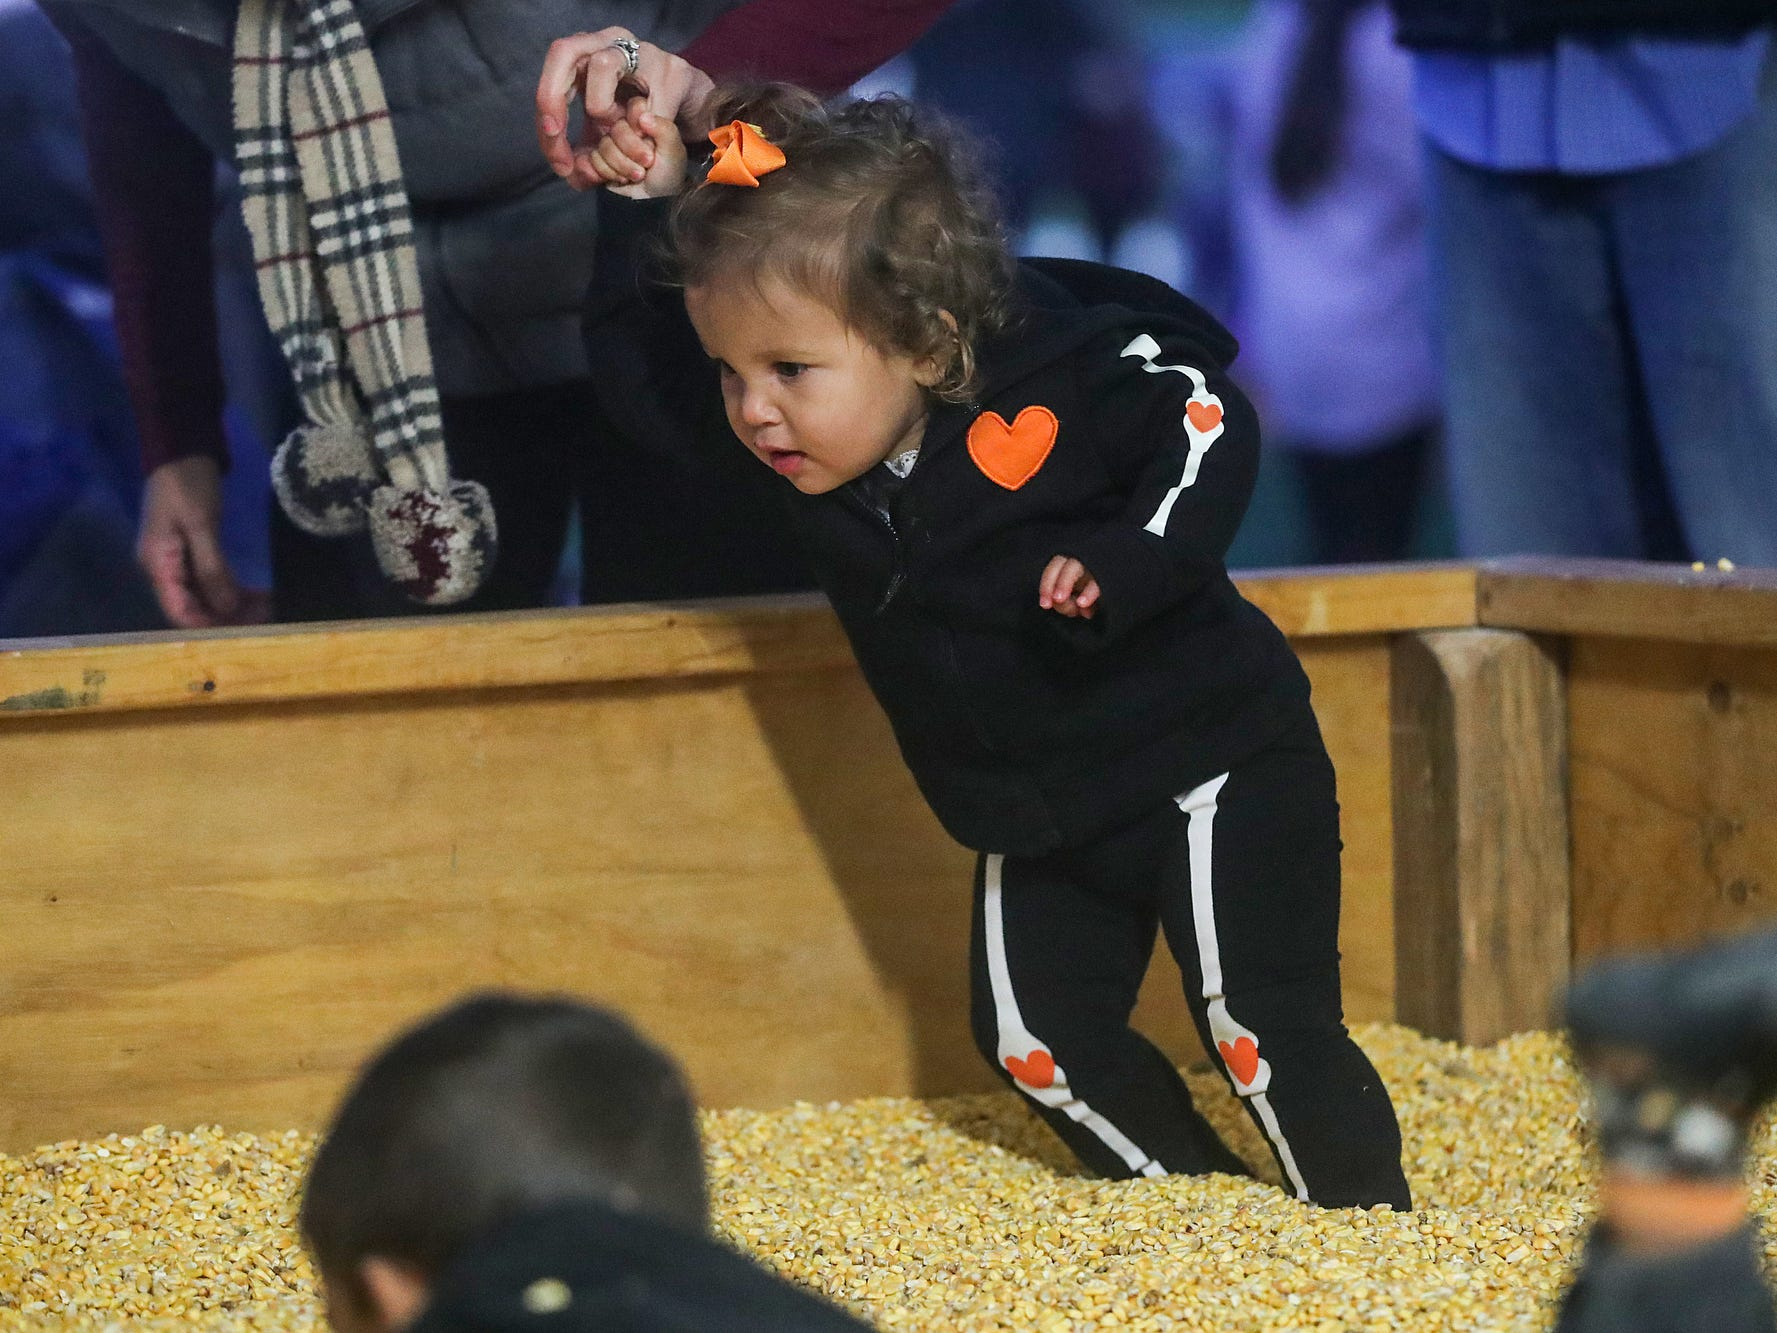 Katherine Bridgwaters, 1, wades through a pen full of corn kernels on opening night of the annual Headless Horseman Halloween festival at Conner Prairie in Fishers, Ind., Thursday, Oct. 11, 2018. The festival is held from 6 to 9 p.m. every Thursday through Sunday, ending Oct. 28, 2018.